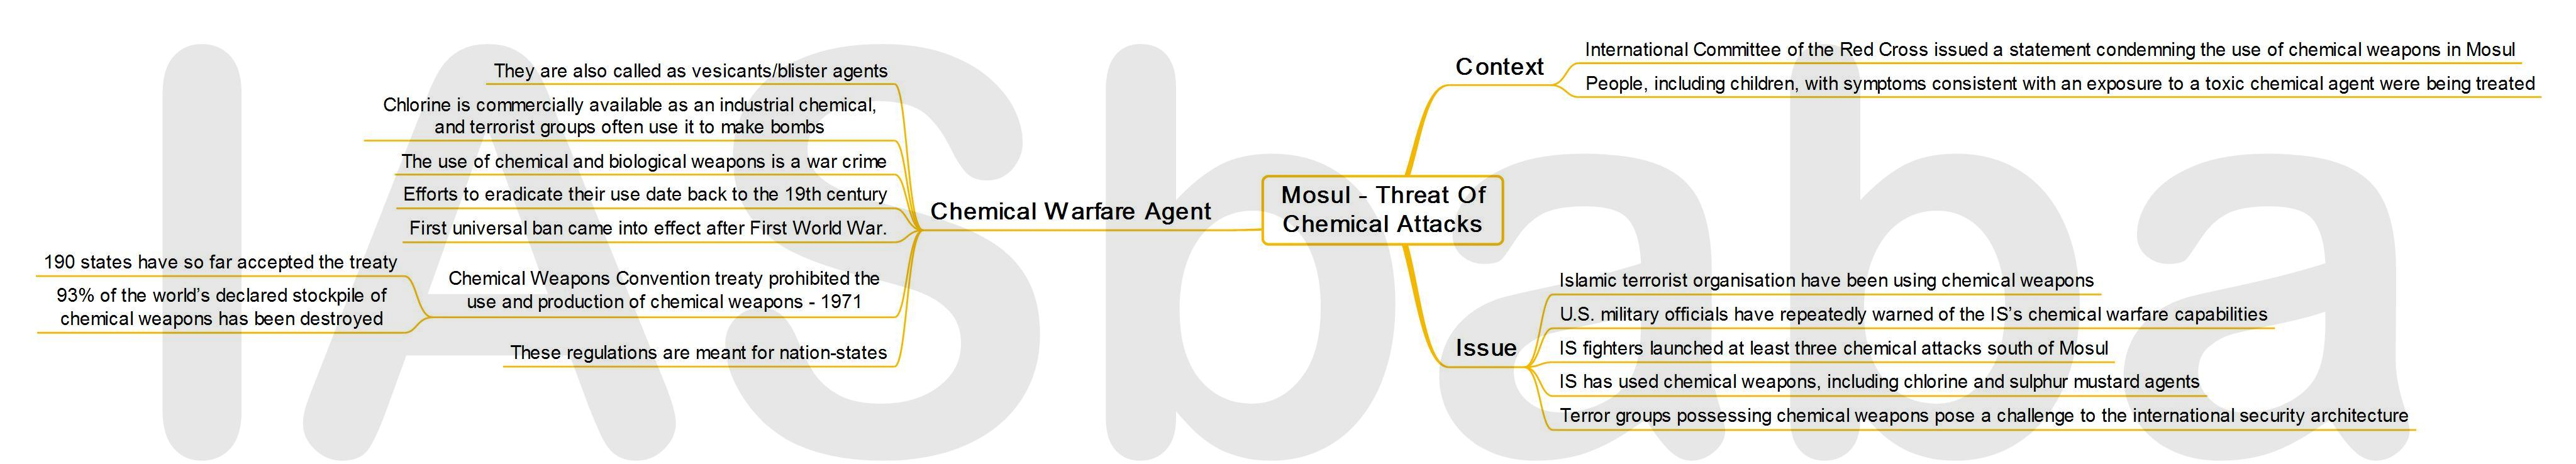 IASbaba's MINDMAP : Issue - Mosul - Threat of Chemical Attacks